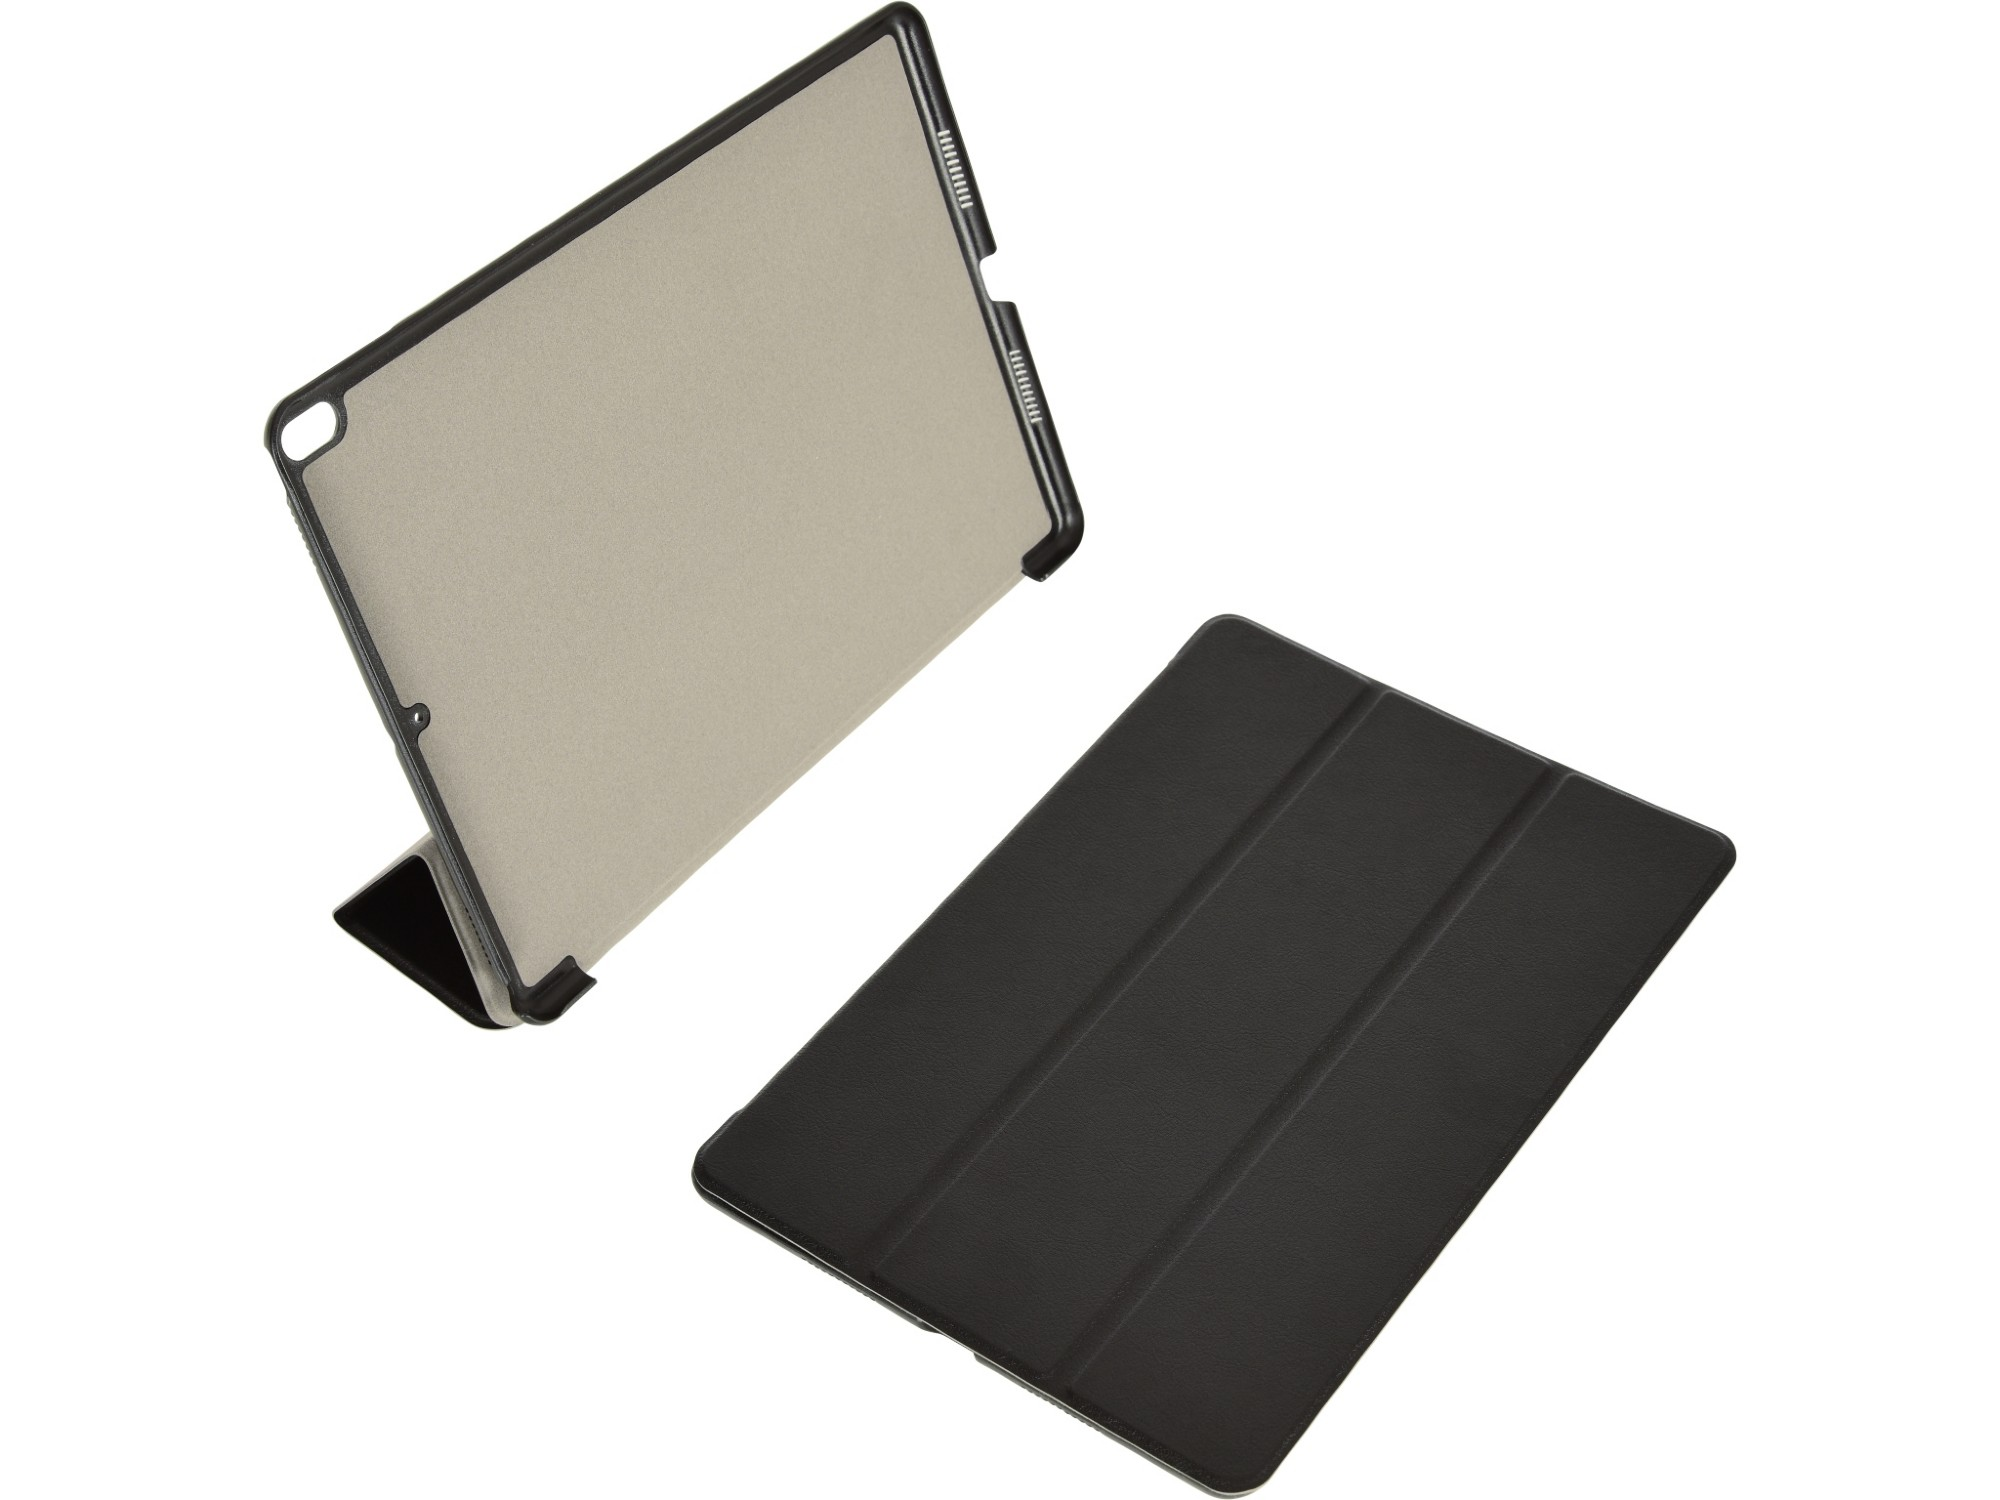 SANDBERG 406-01 WRAPON CASE IPAD PRO 10.5